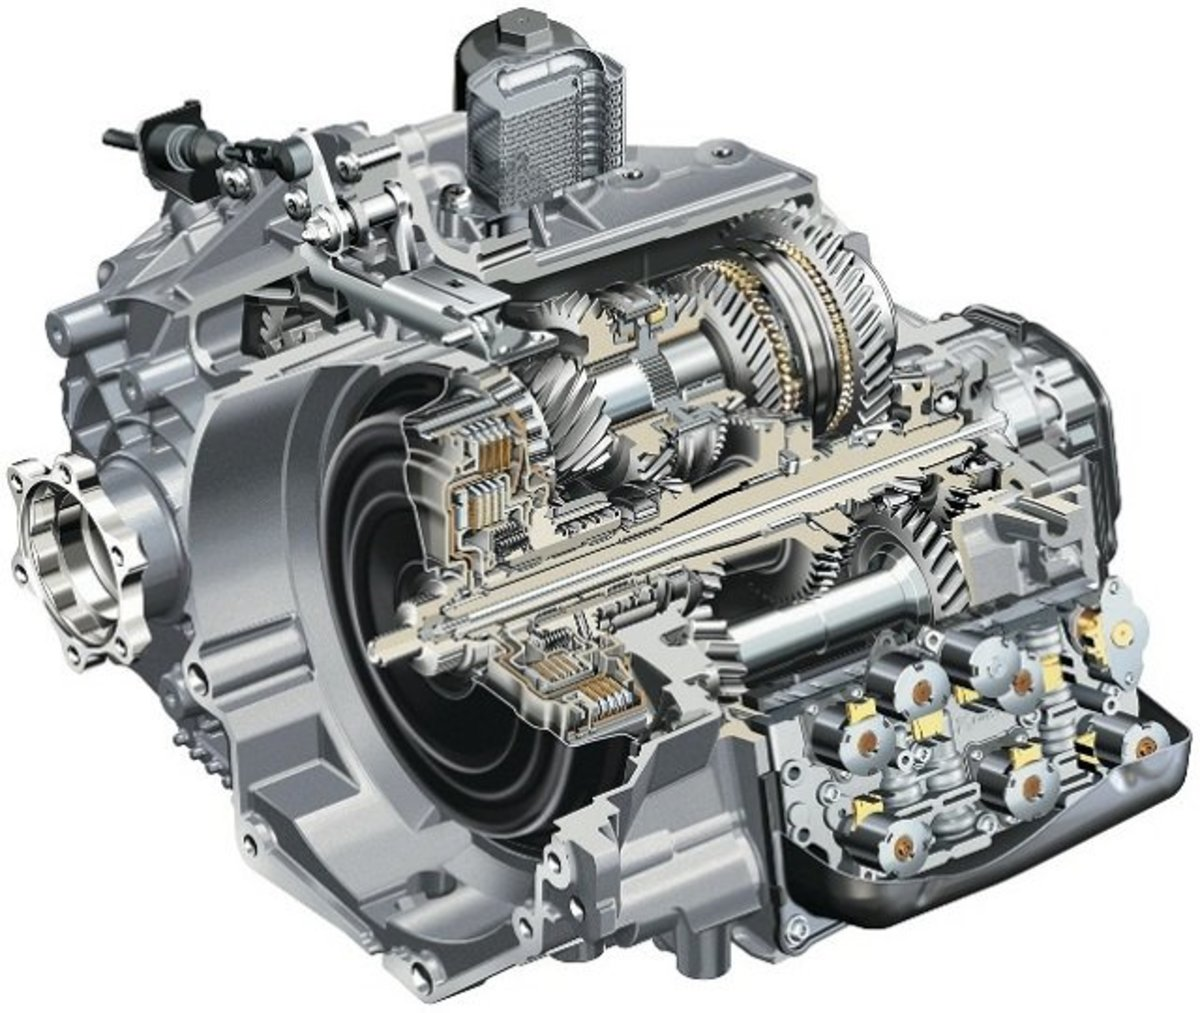 A cutaway image of a dual clutch transmission.